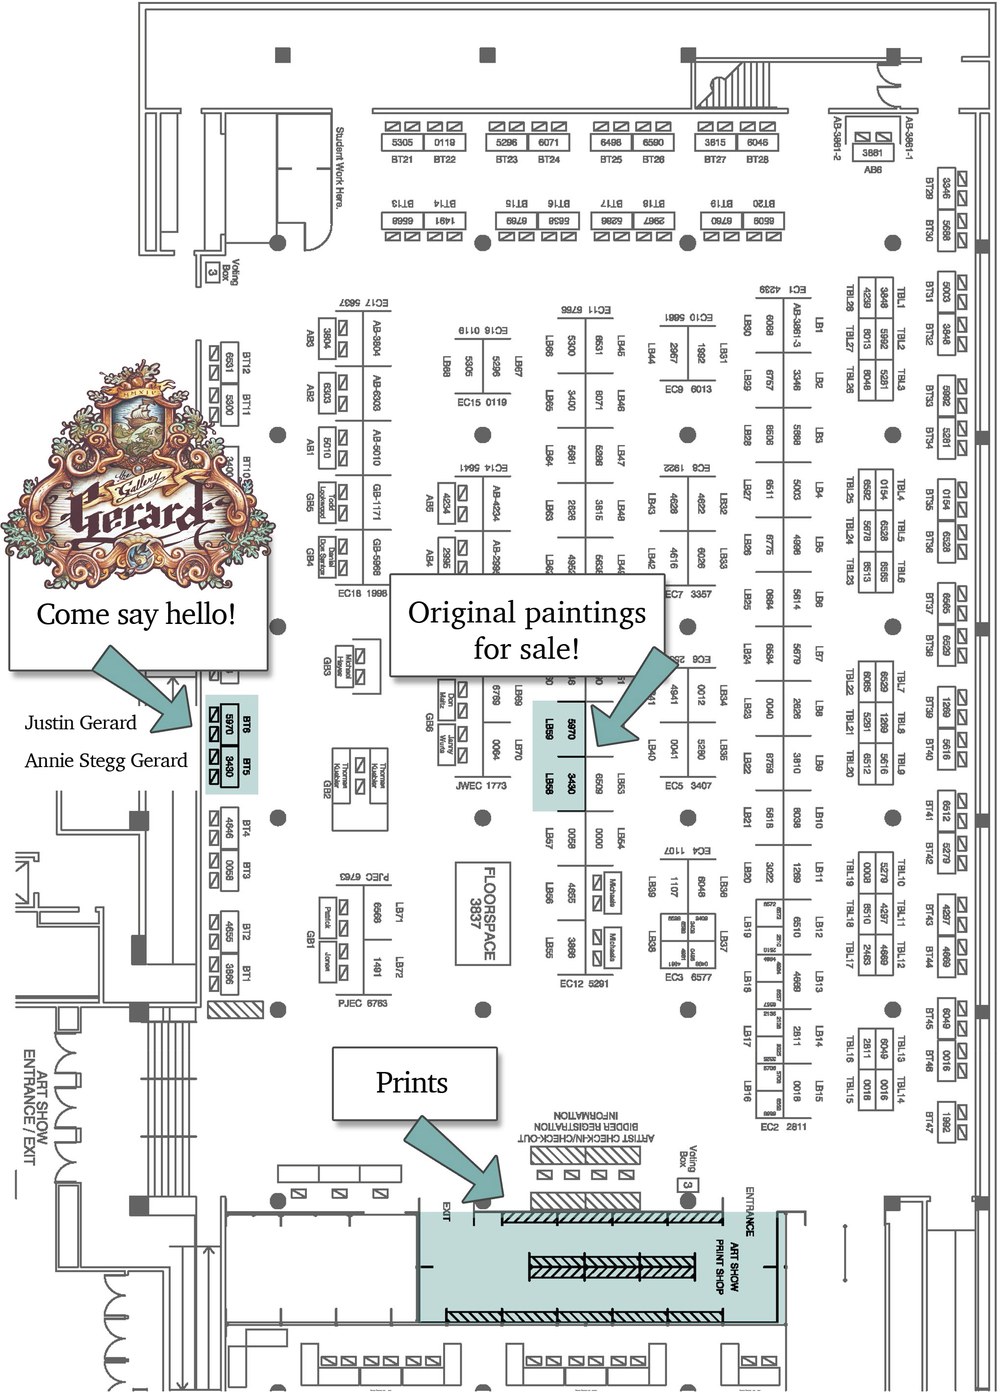 DragonCon2014Map.jpg